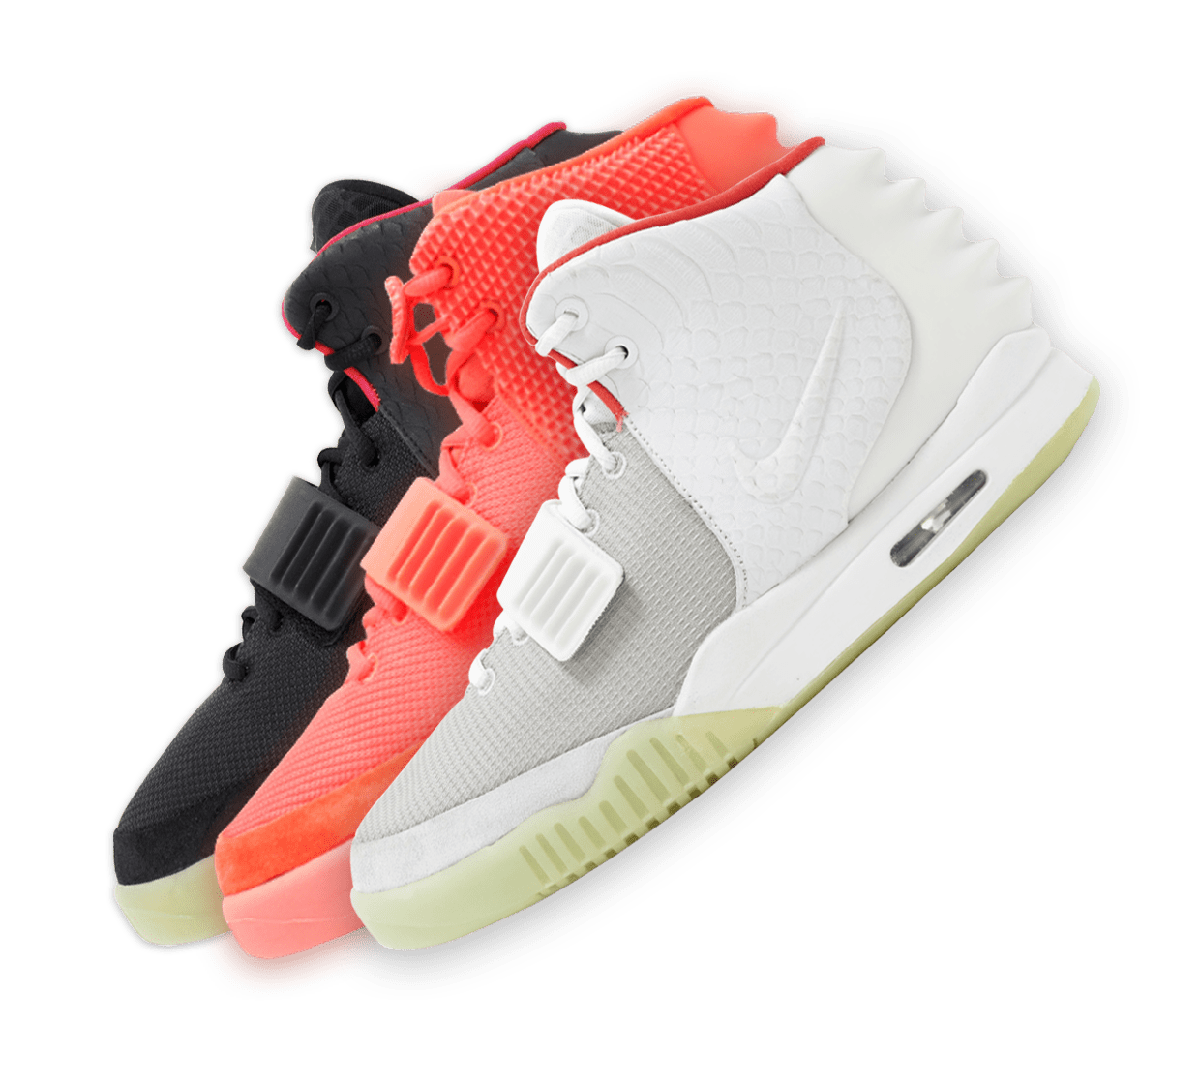 Epic Nike Air Yeezy 2 Collection Image